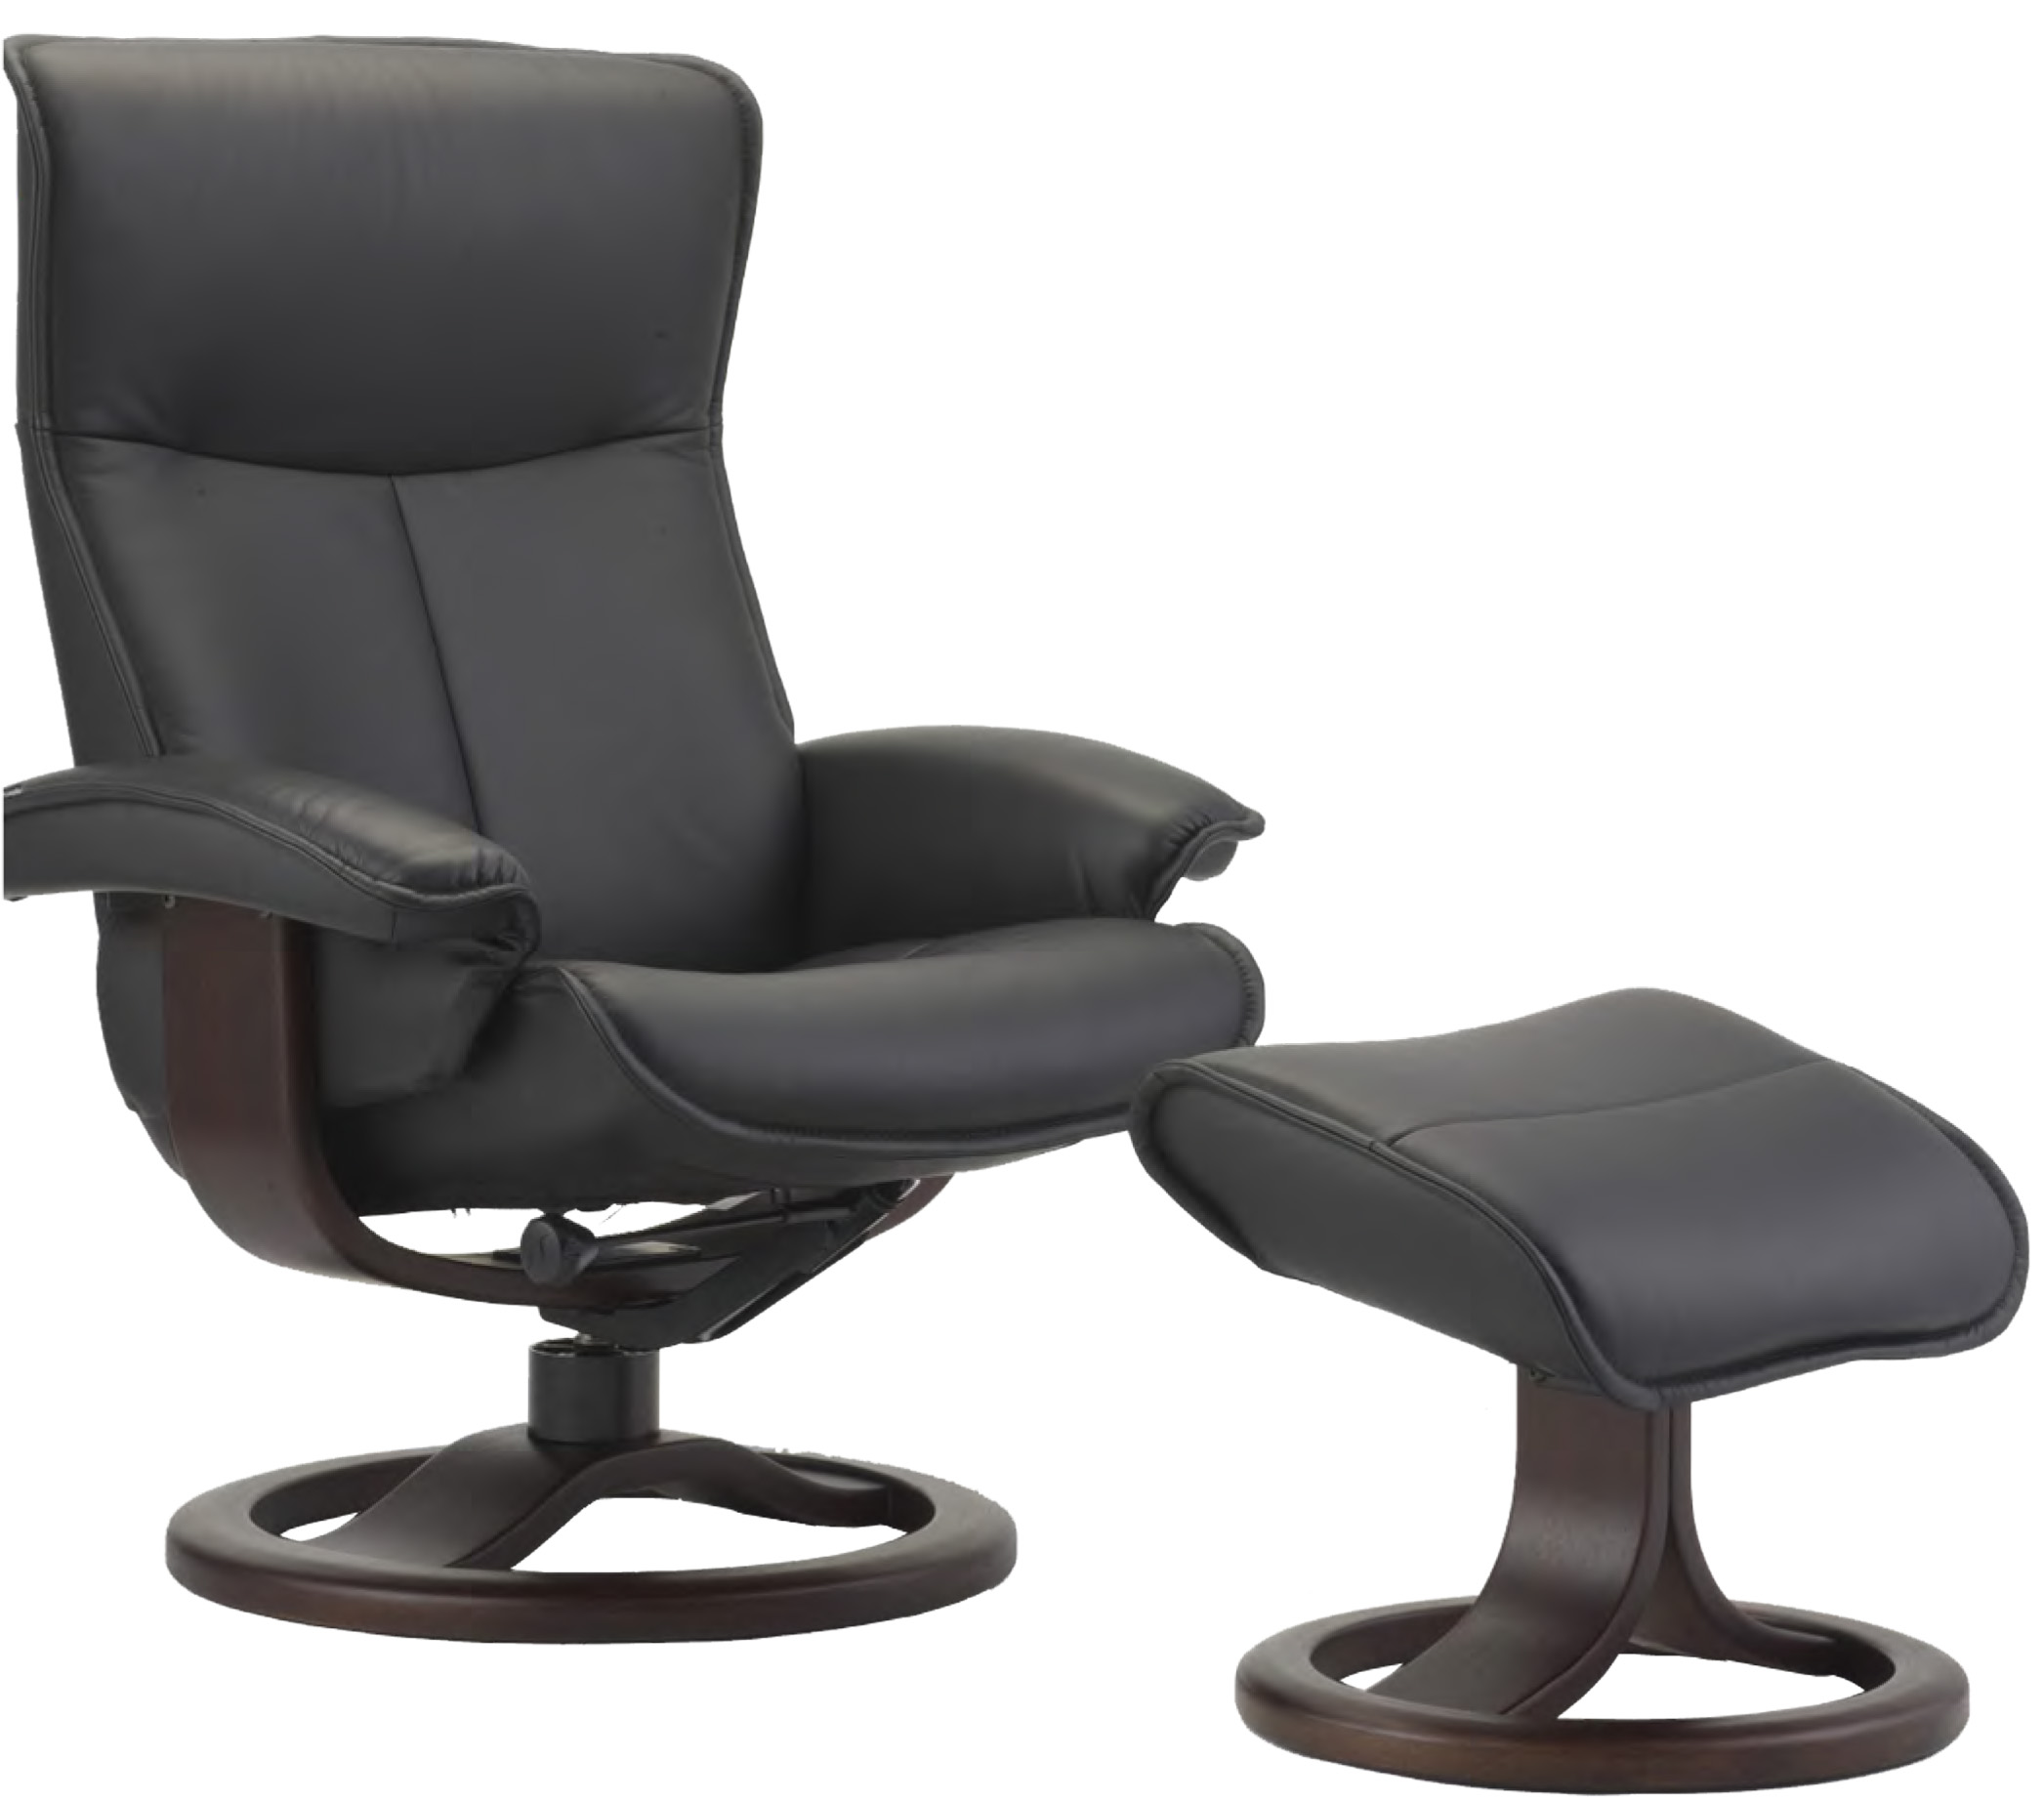 reclining chair with ottoman leather cover hire moray fjords senator ergonomic recliner and scandinavian